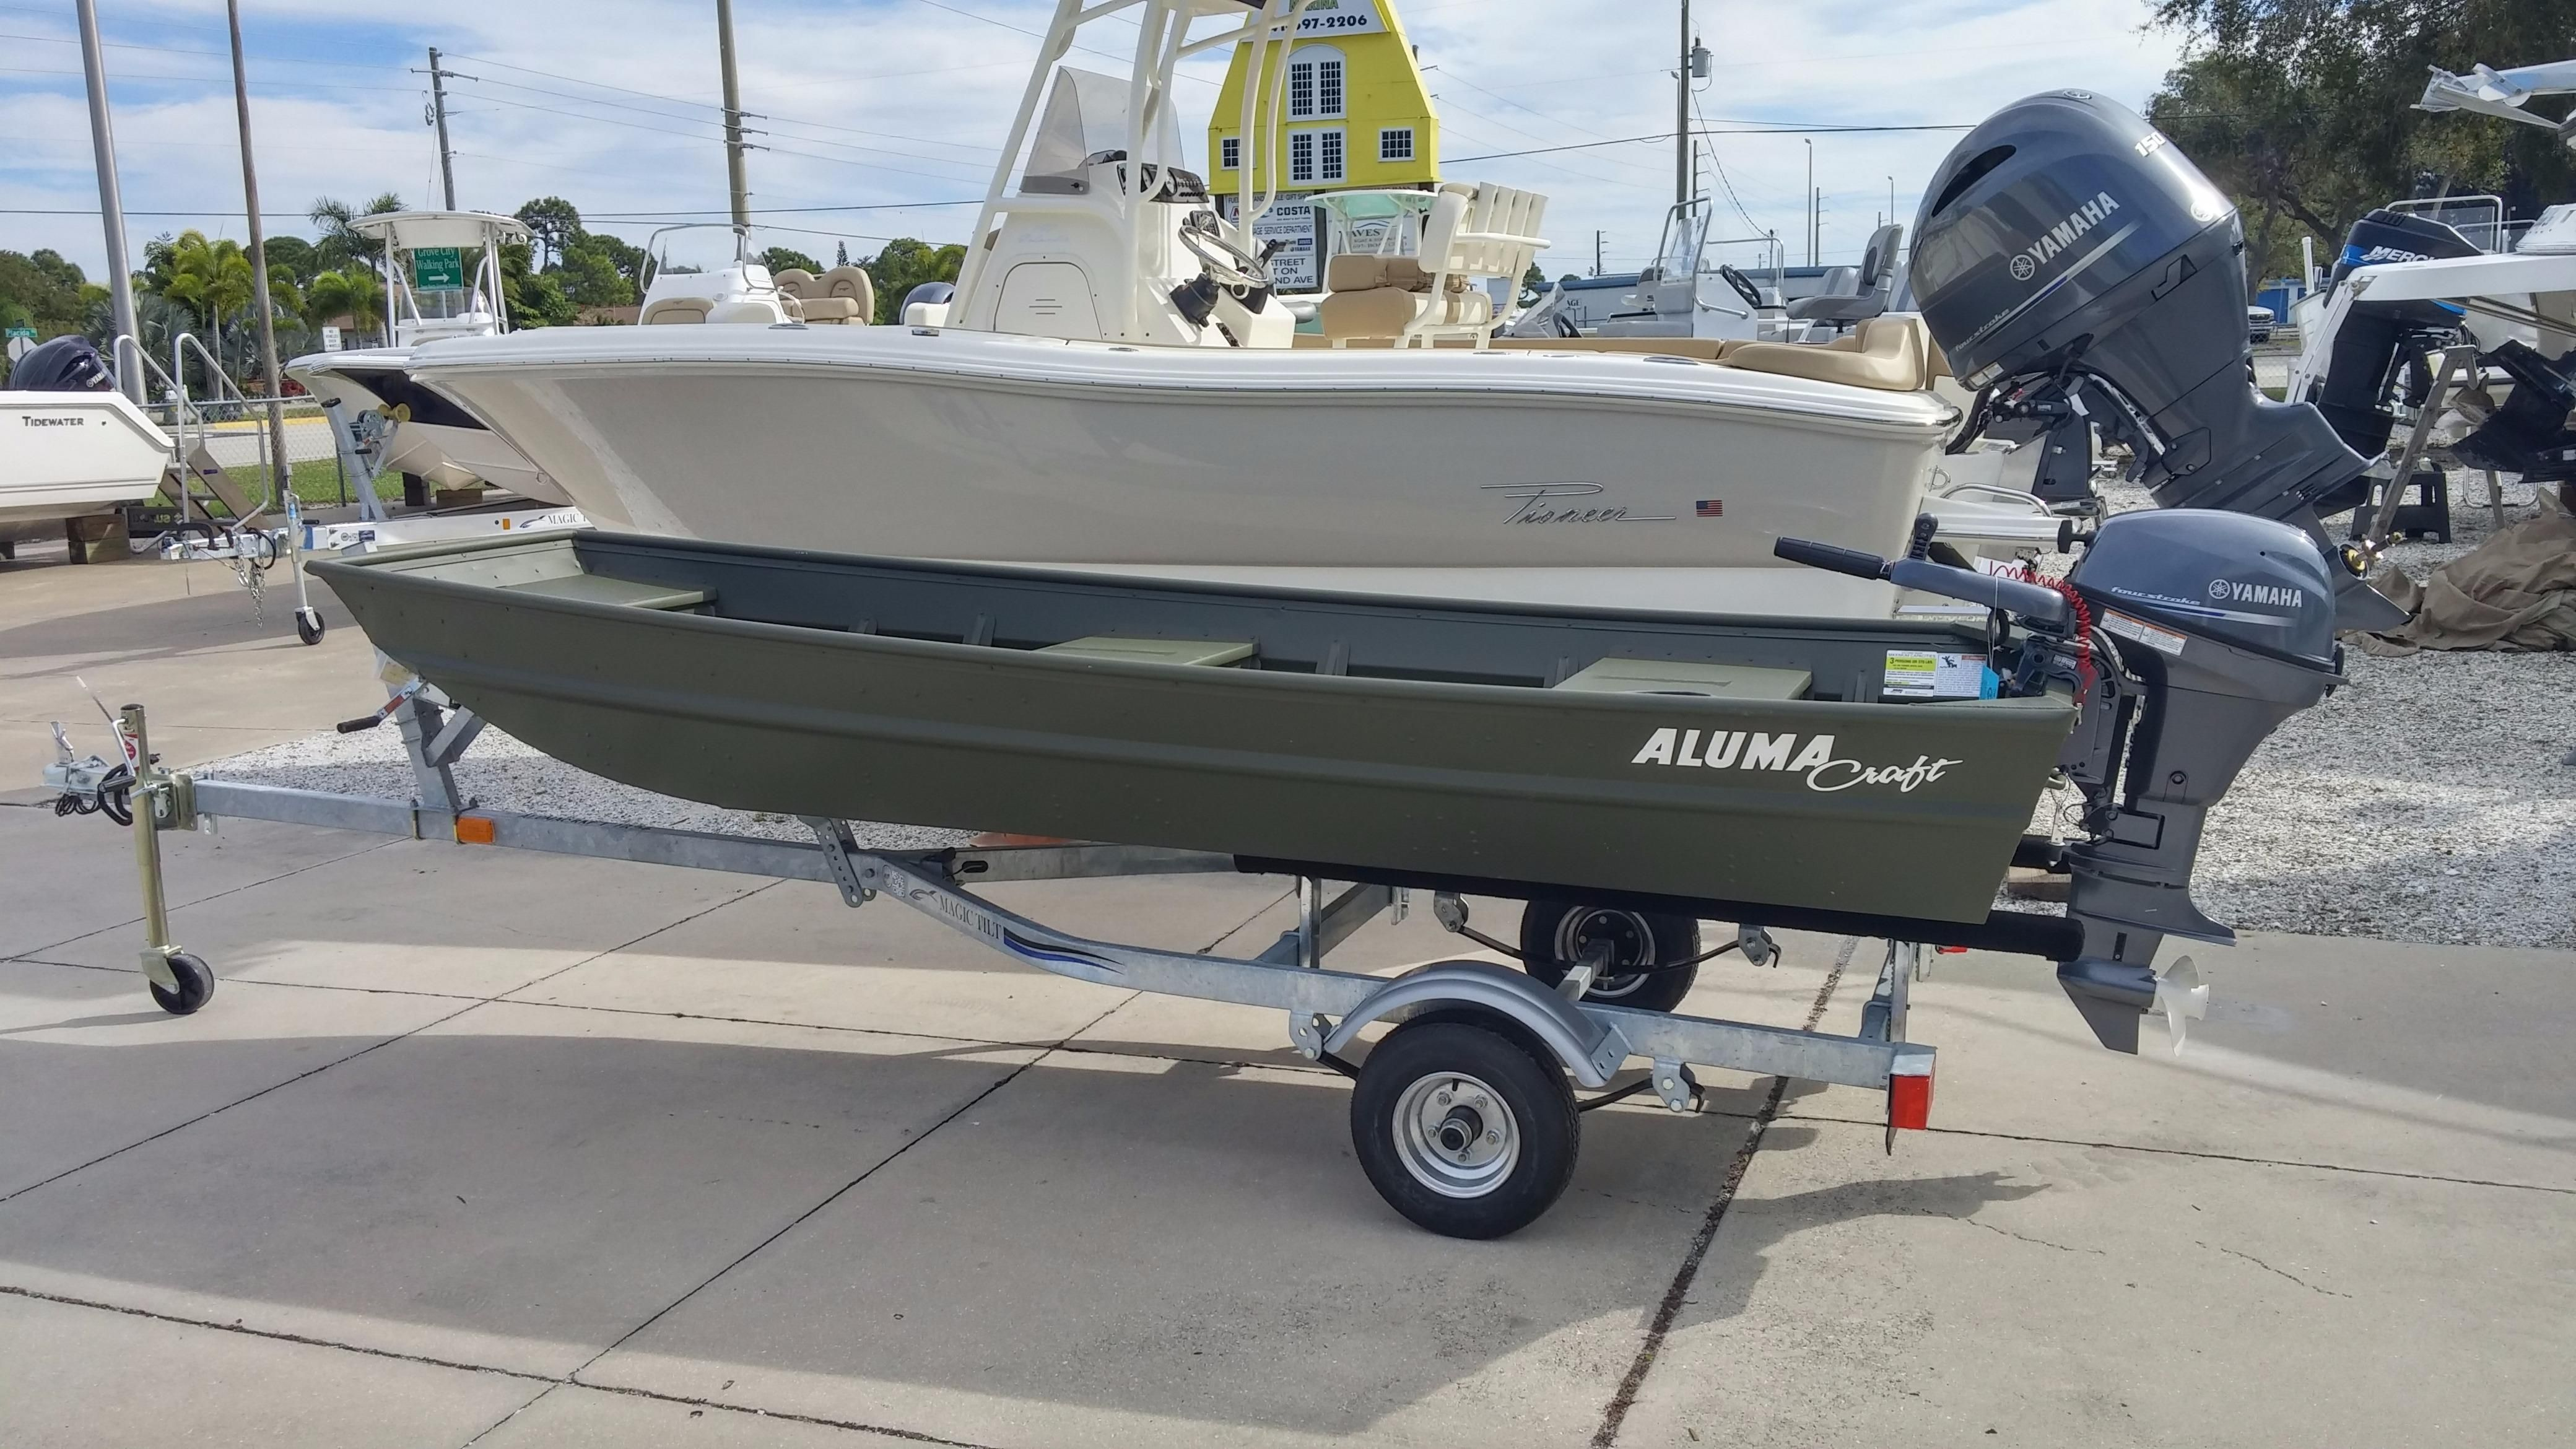 2016 alumacraft sierra mv 1236 package power boat for sale Aluminum boat and motor packages